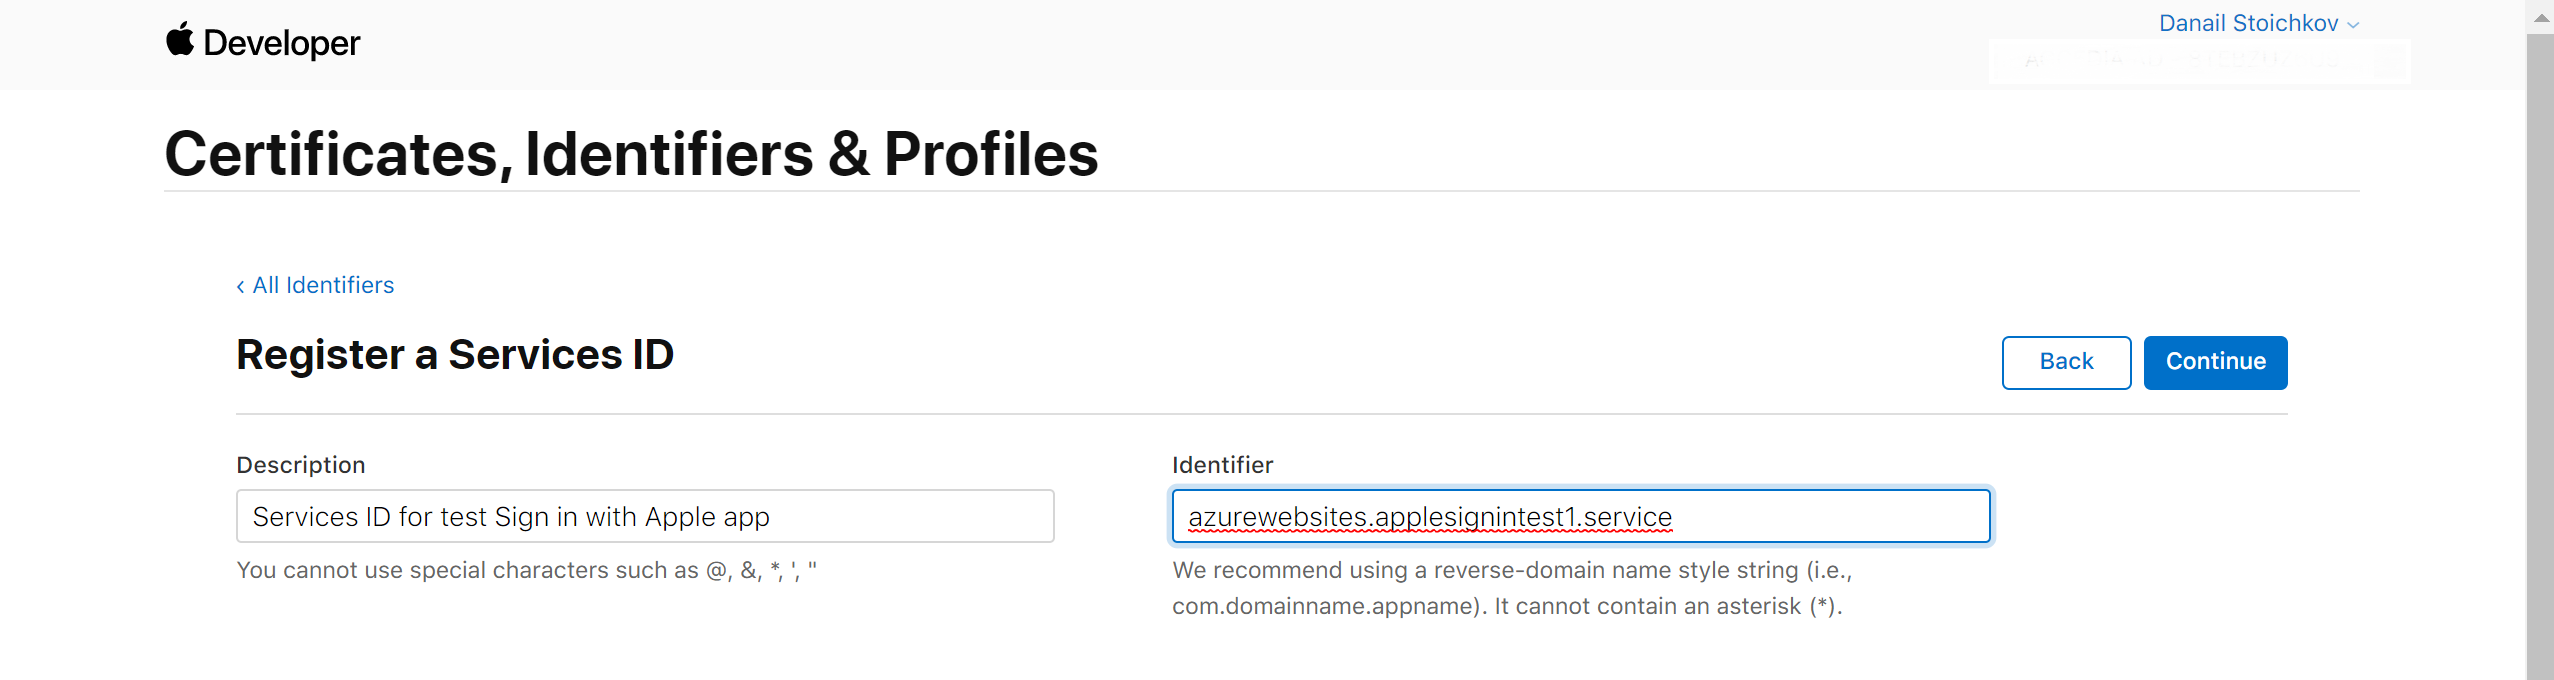 sign in with apple register a services ID